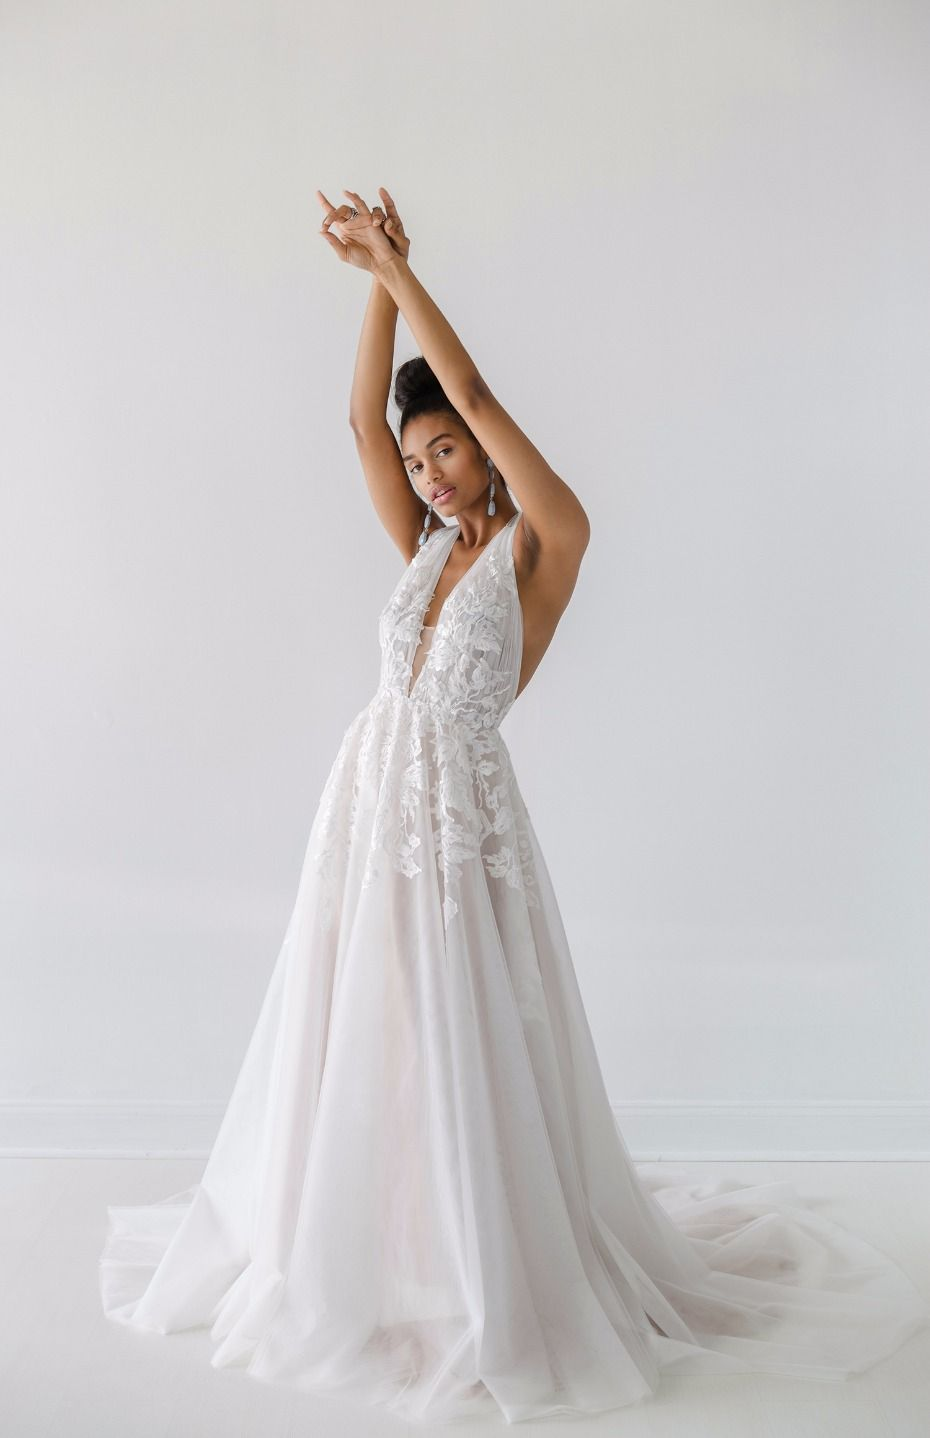 Ivy & Aster Fall 2018 Bridal Collection | Pinterest | Aster, Bridal ...